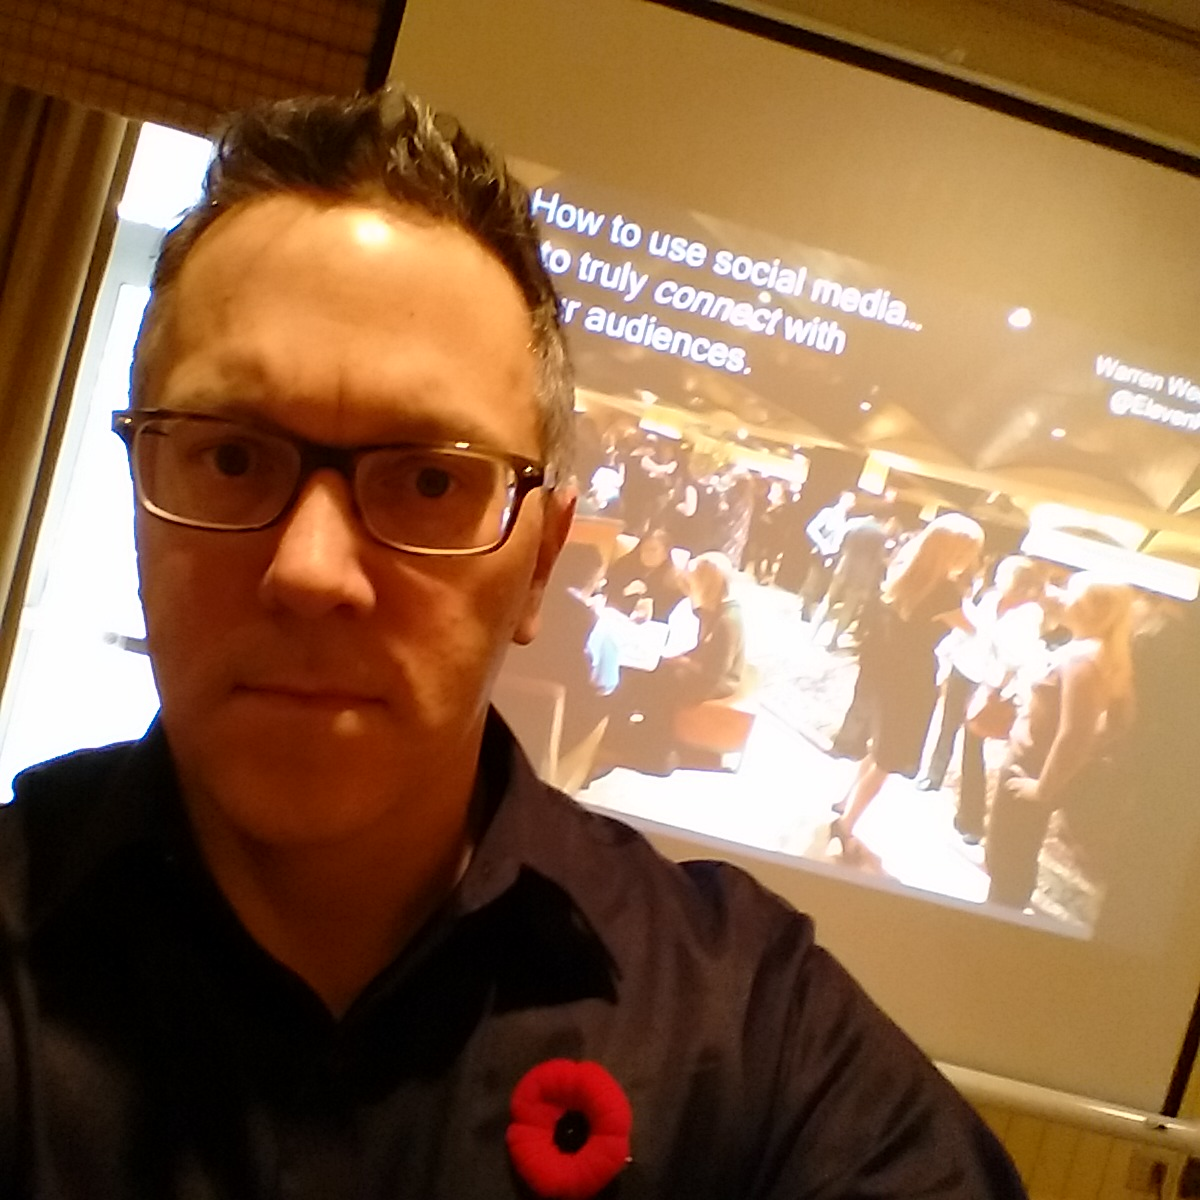 warren weeks giving a talk on how to use social media to connect with audiences at an industry conference in muskoka in november (did the poppy give it away?), 2014.